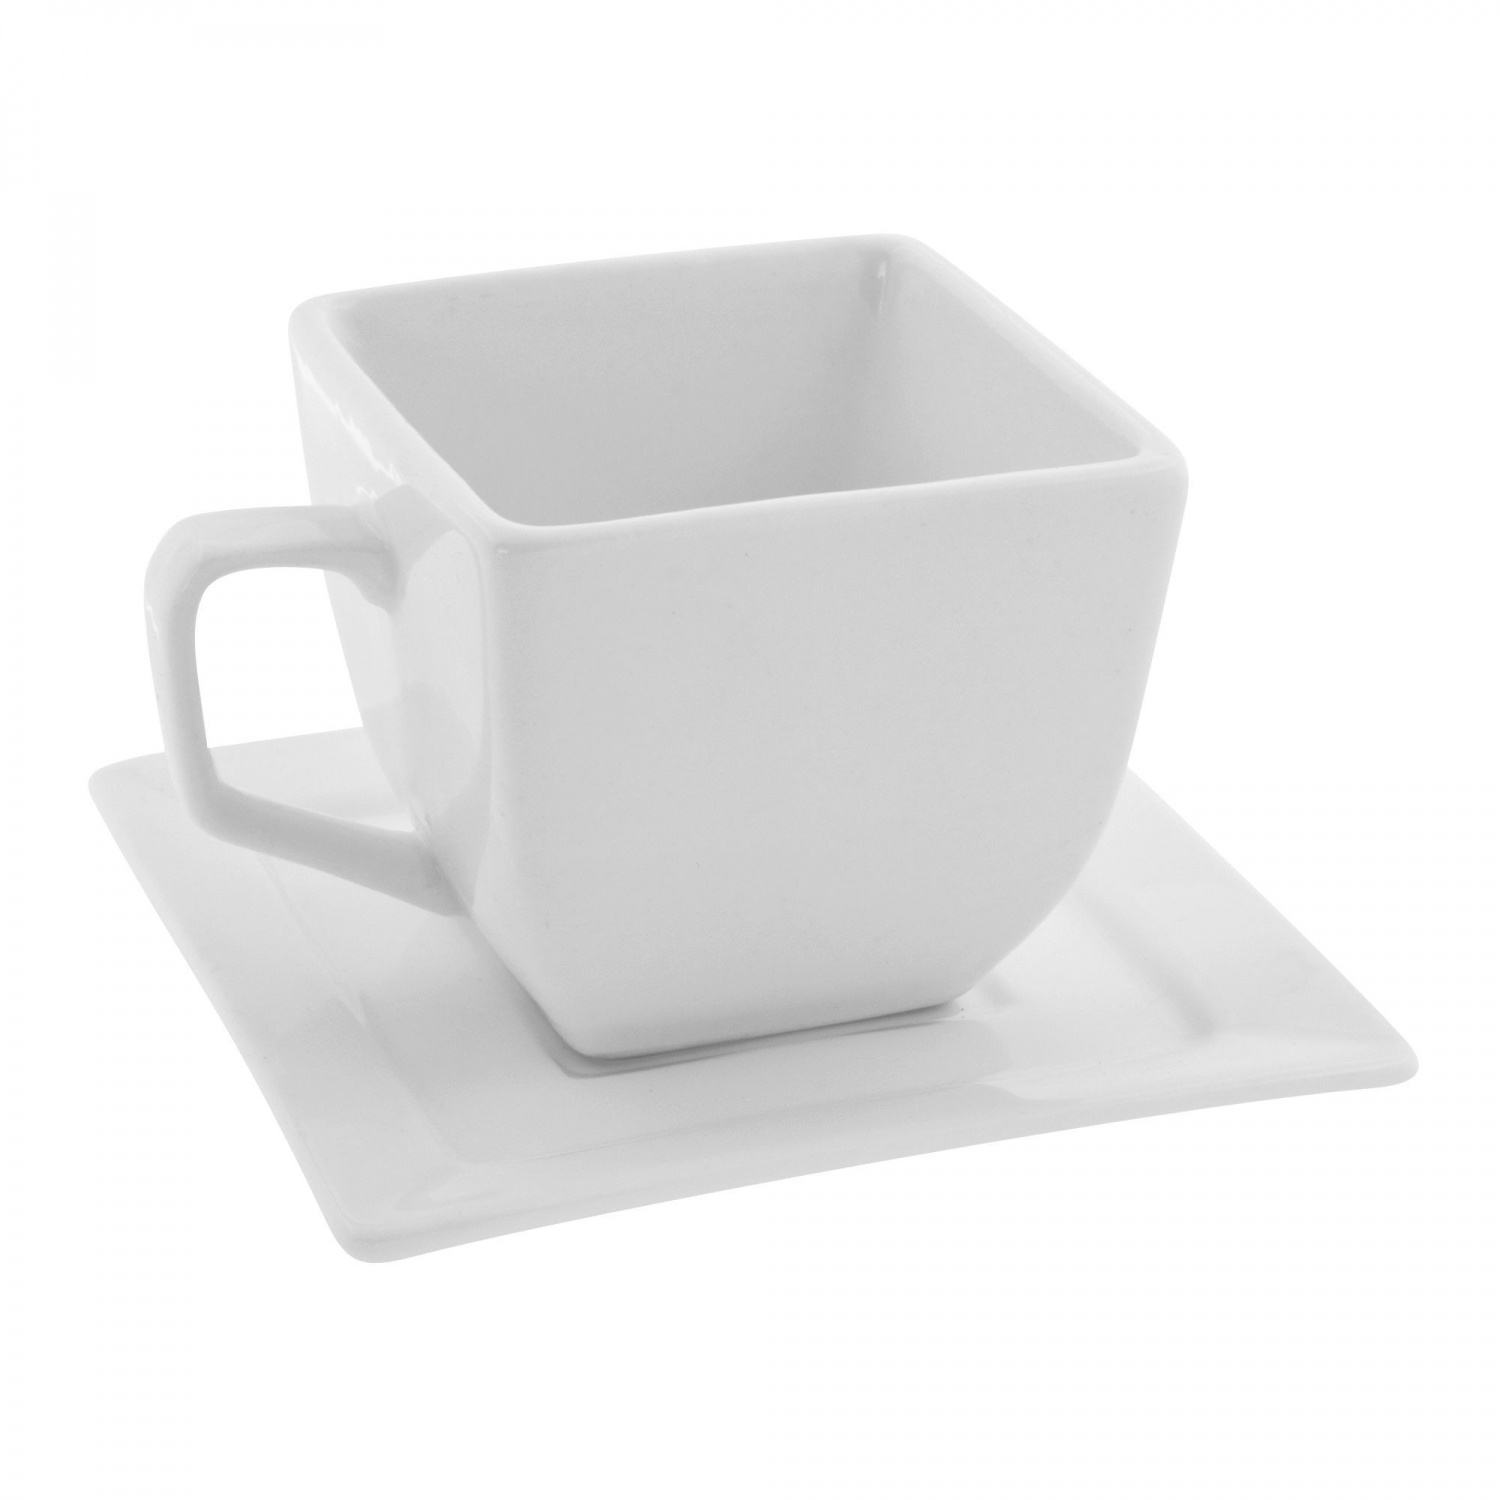 10 Strawberry Street WTR-CUP 4 oz. Whittier Square White Cup and Saucer - 24 pcs